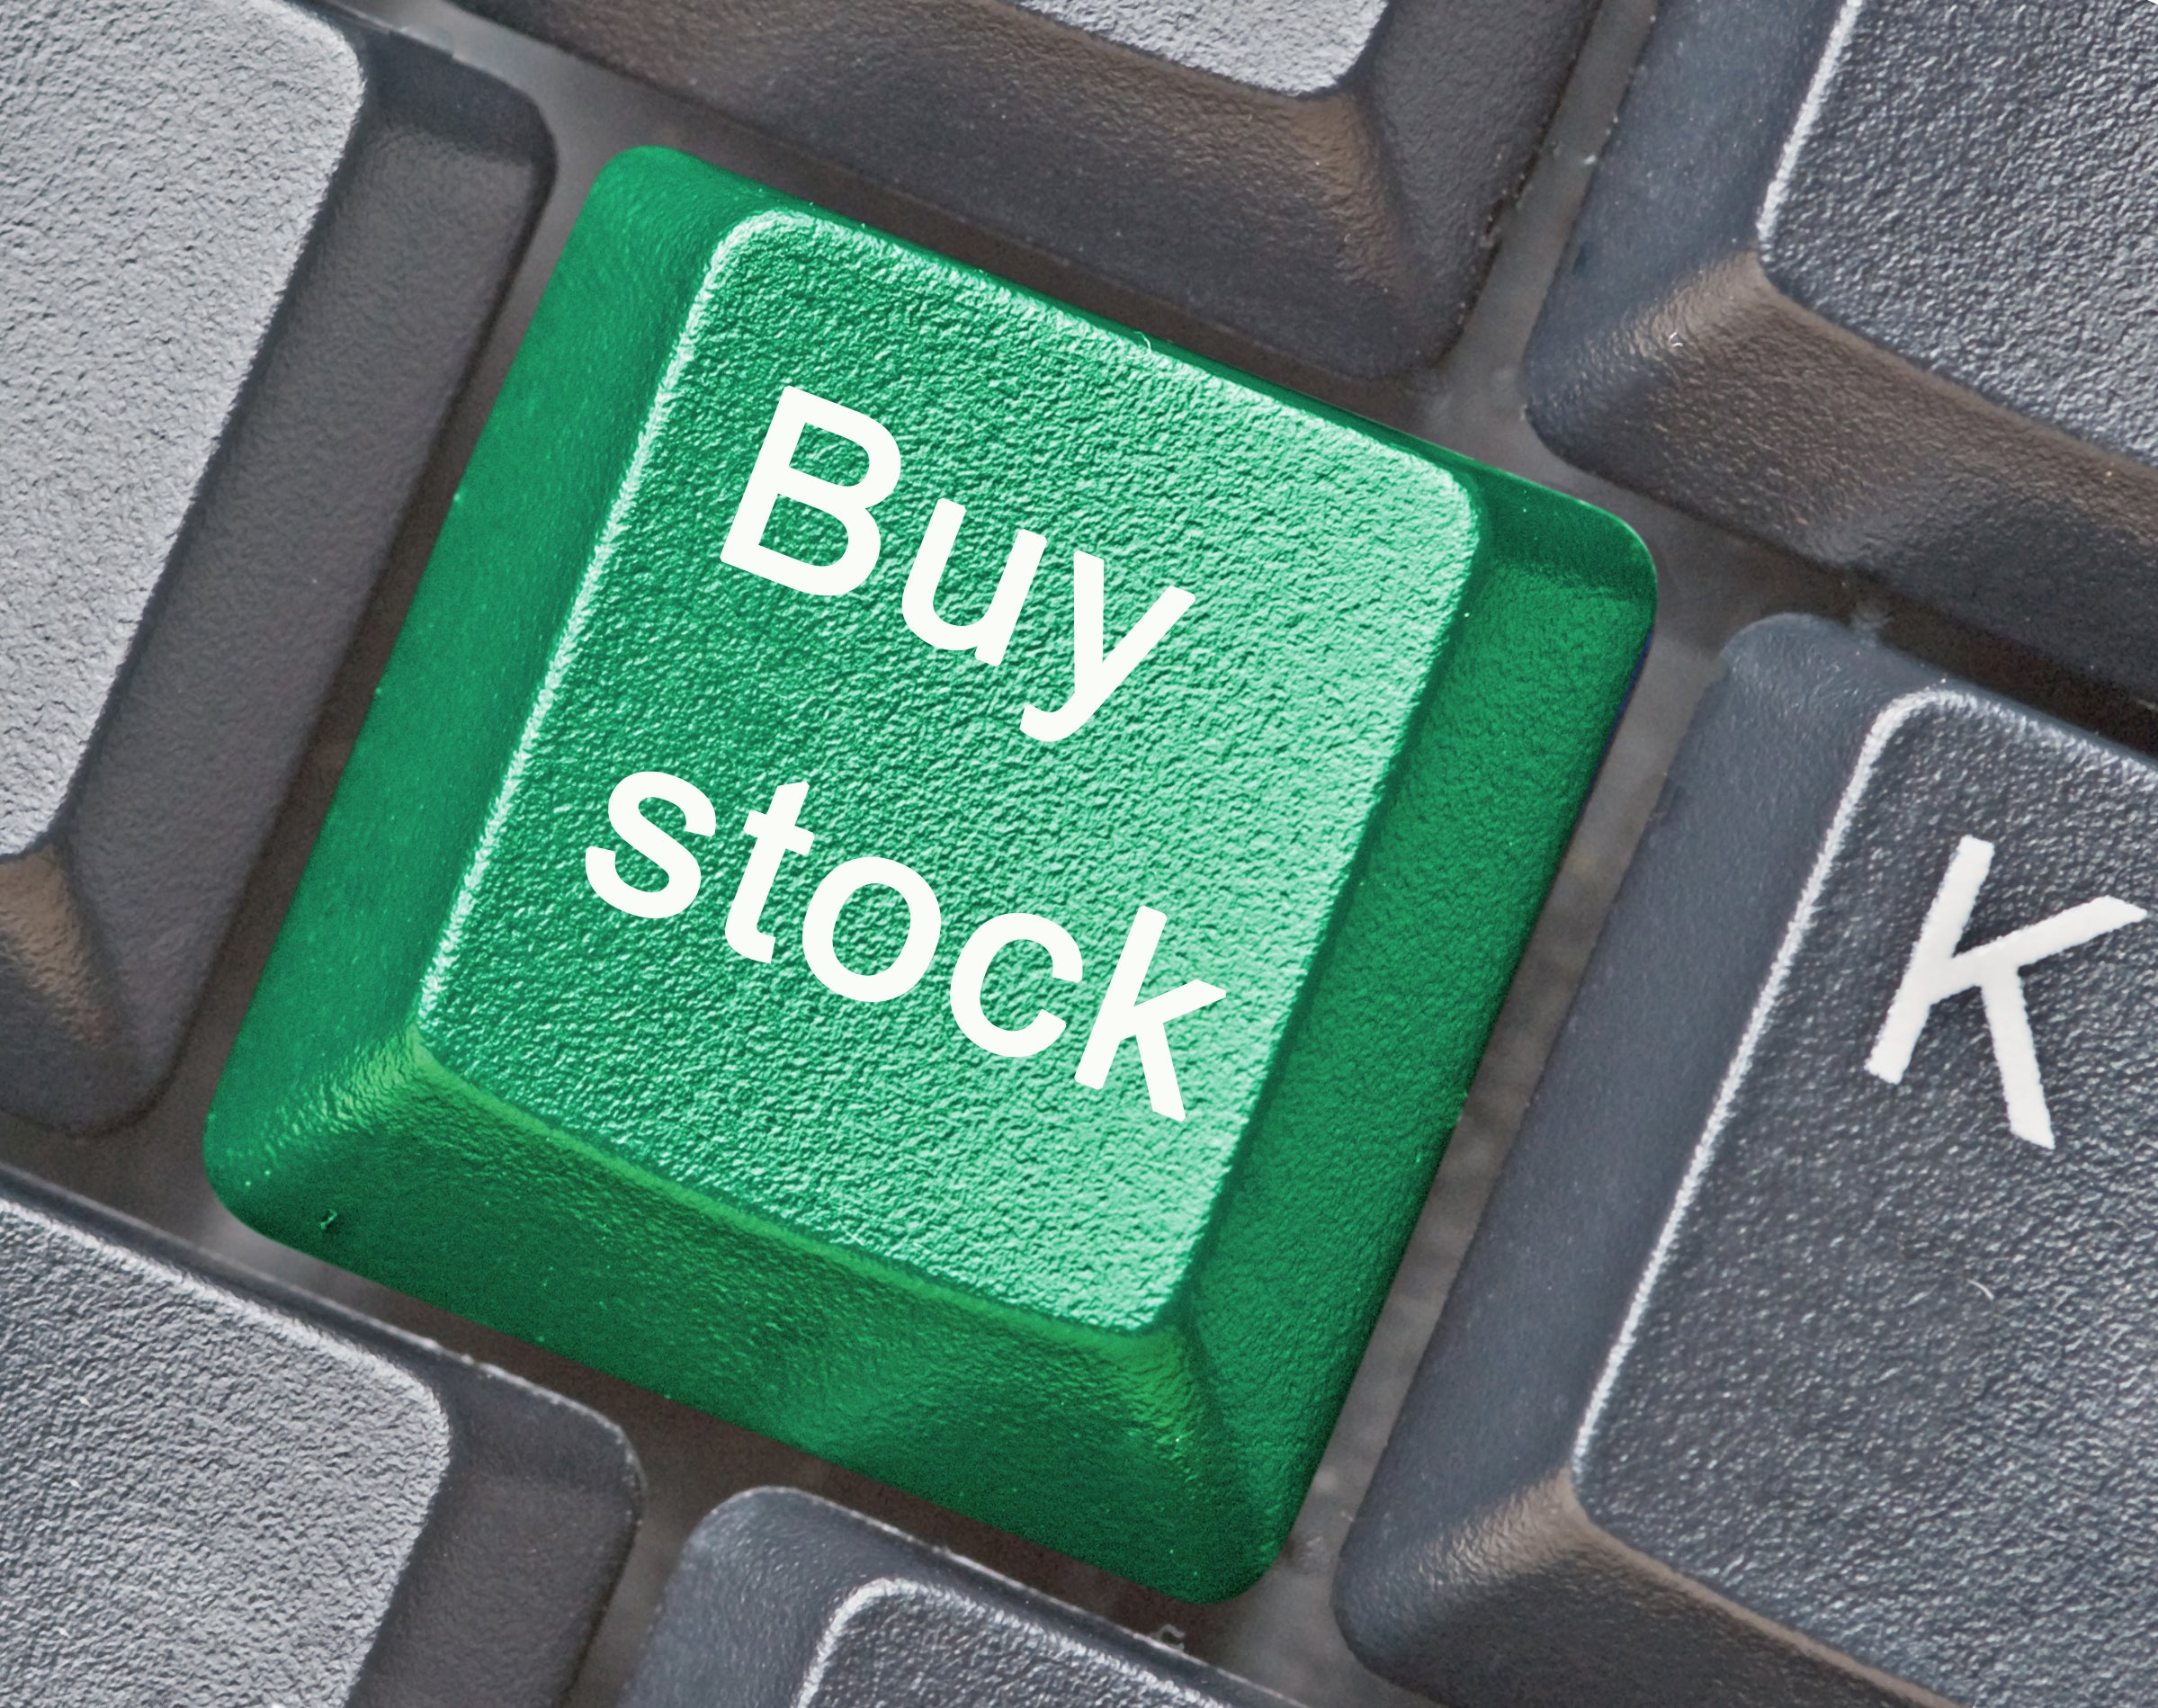 3 Big Industrial Stocks Just Hit 52 Week Highs Why This One Is A